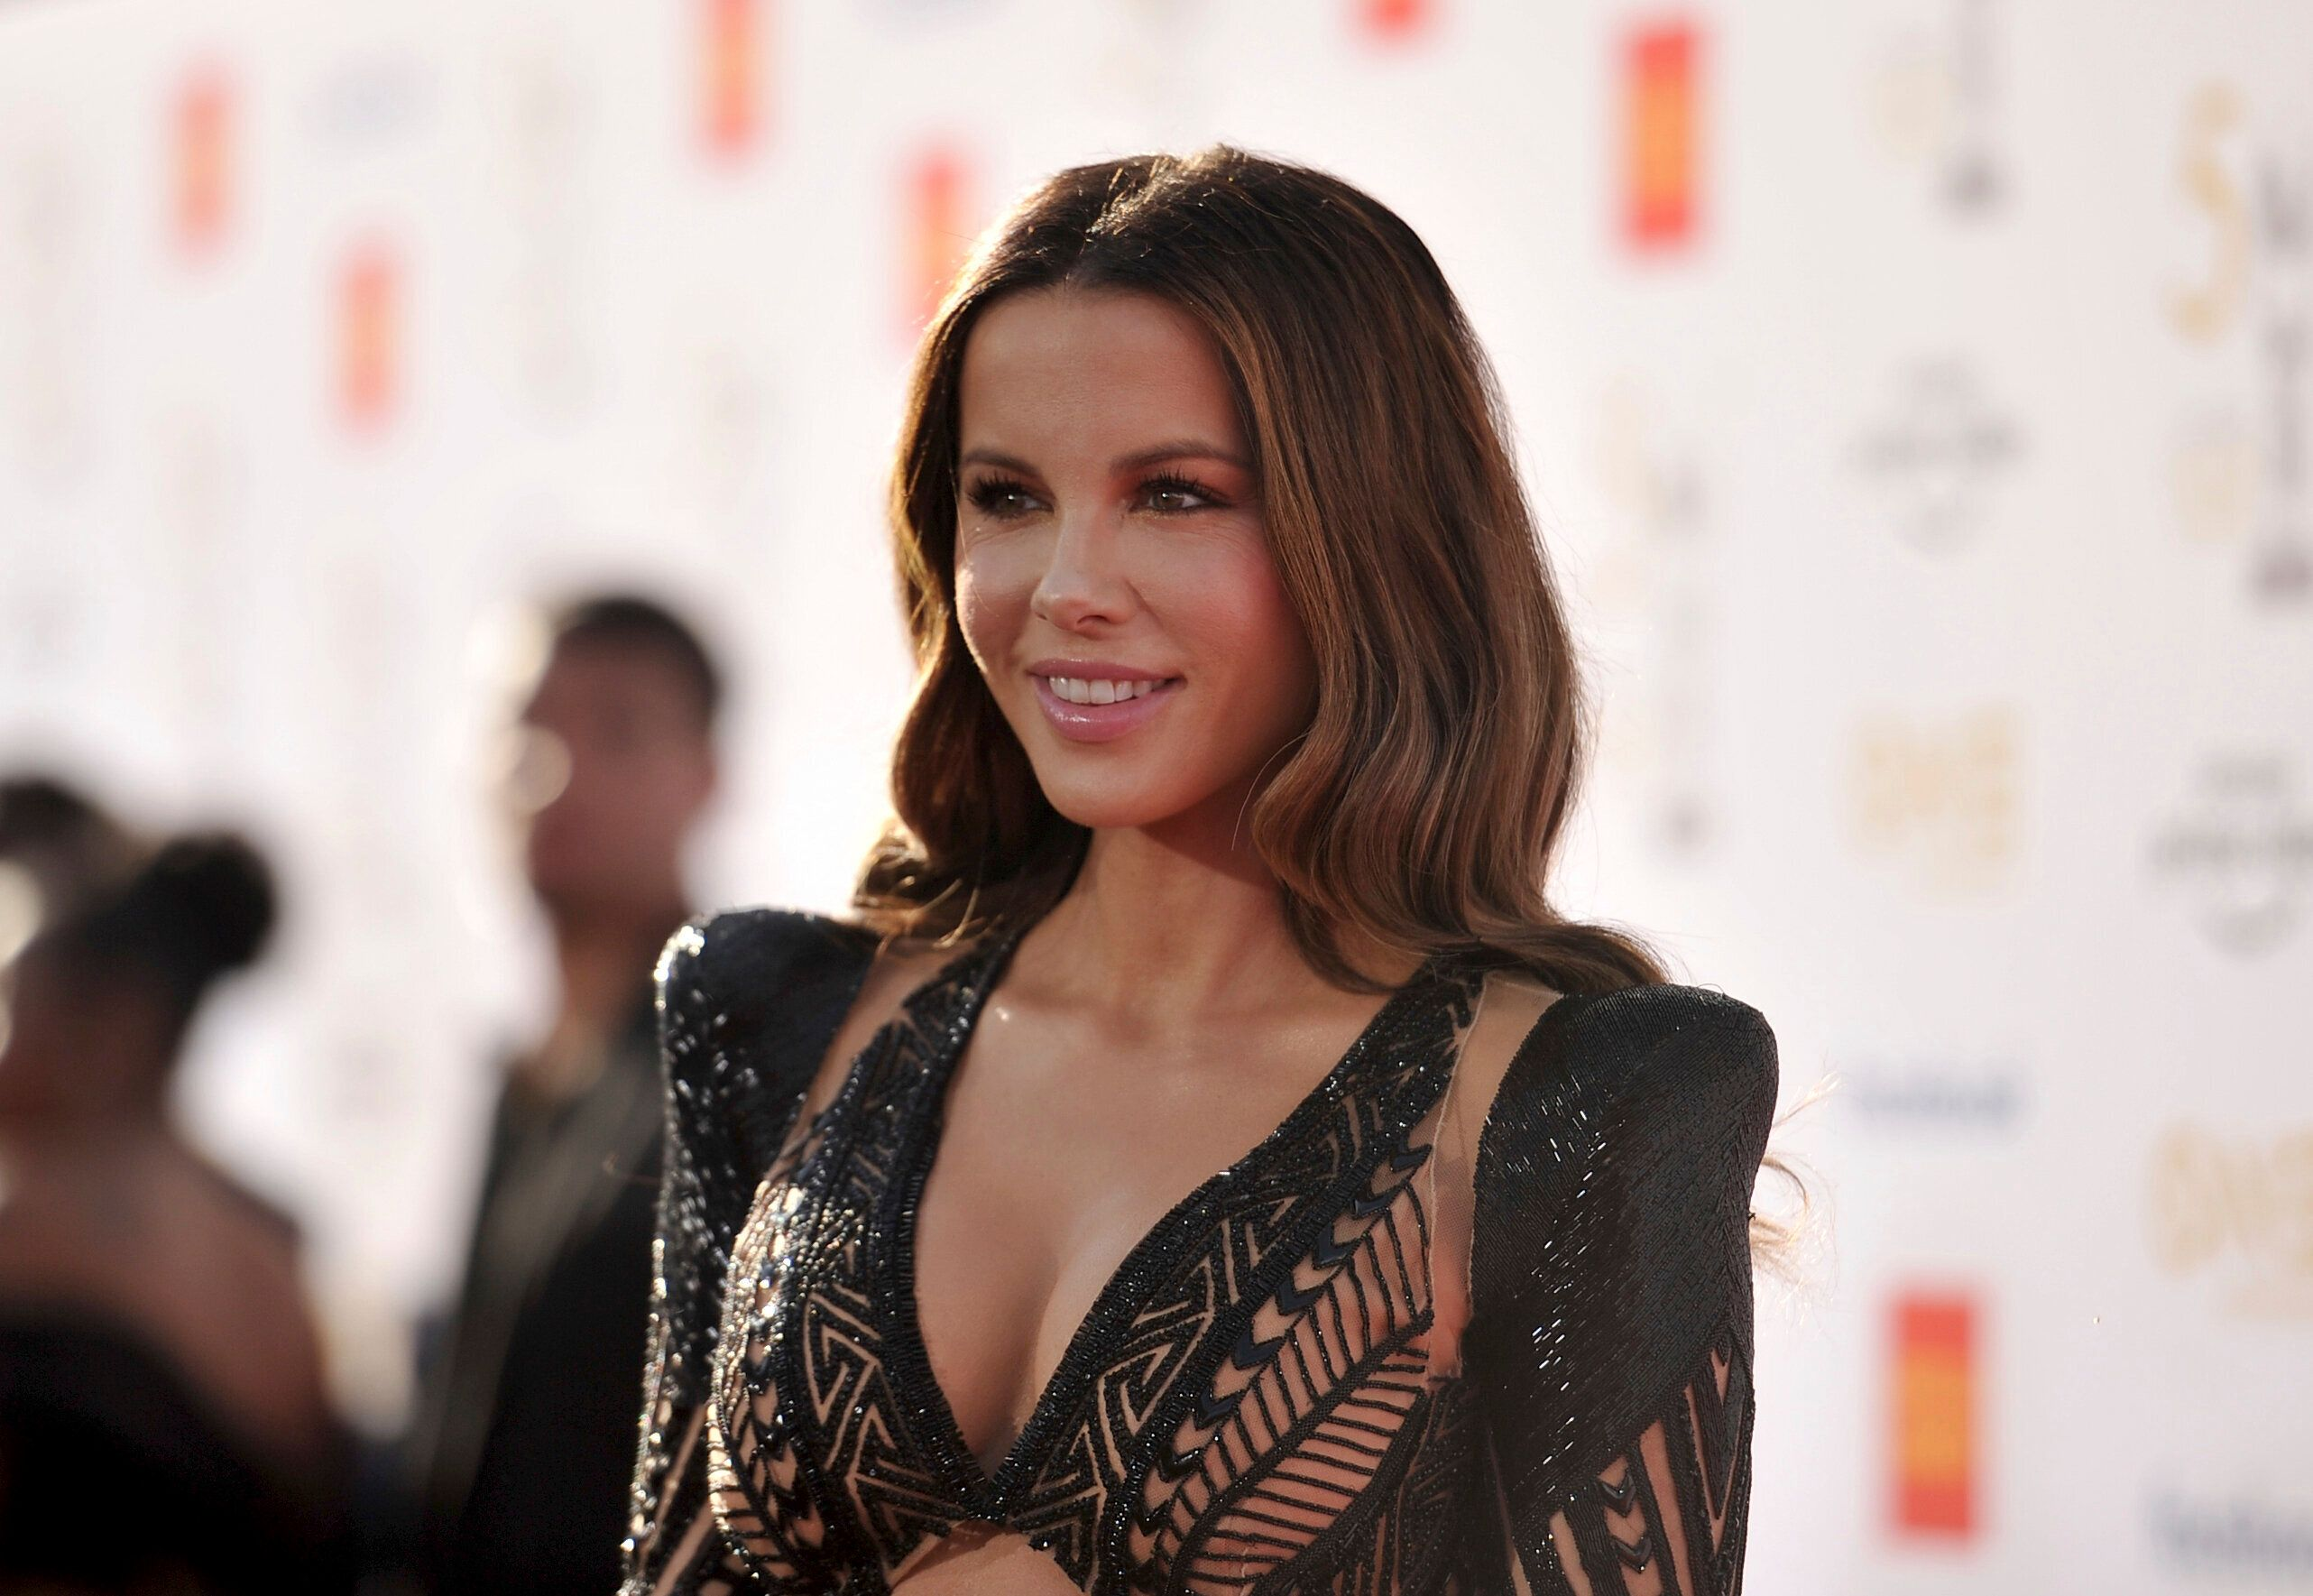 Kate Beckinsale arrives at the 50th annual NAACP Image Awards on Saturday, March 30, 2019, at the Dolby Theatre in Los Angeles. (Photo by Richard Shotwell/Invision/AP)